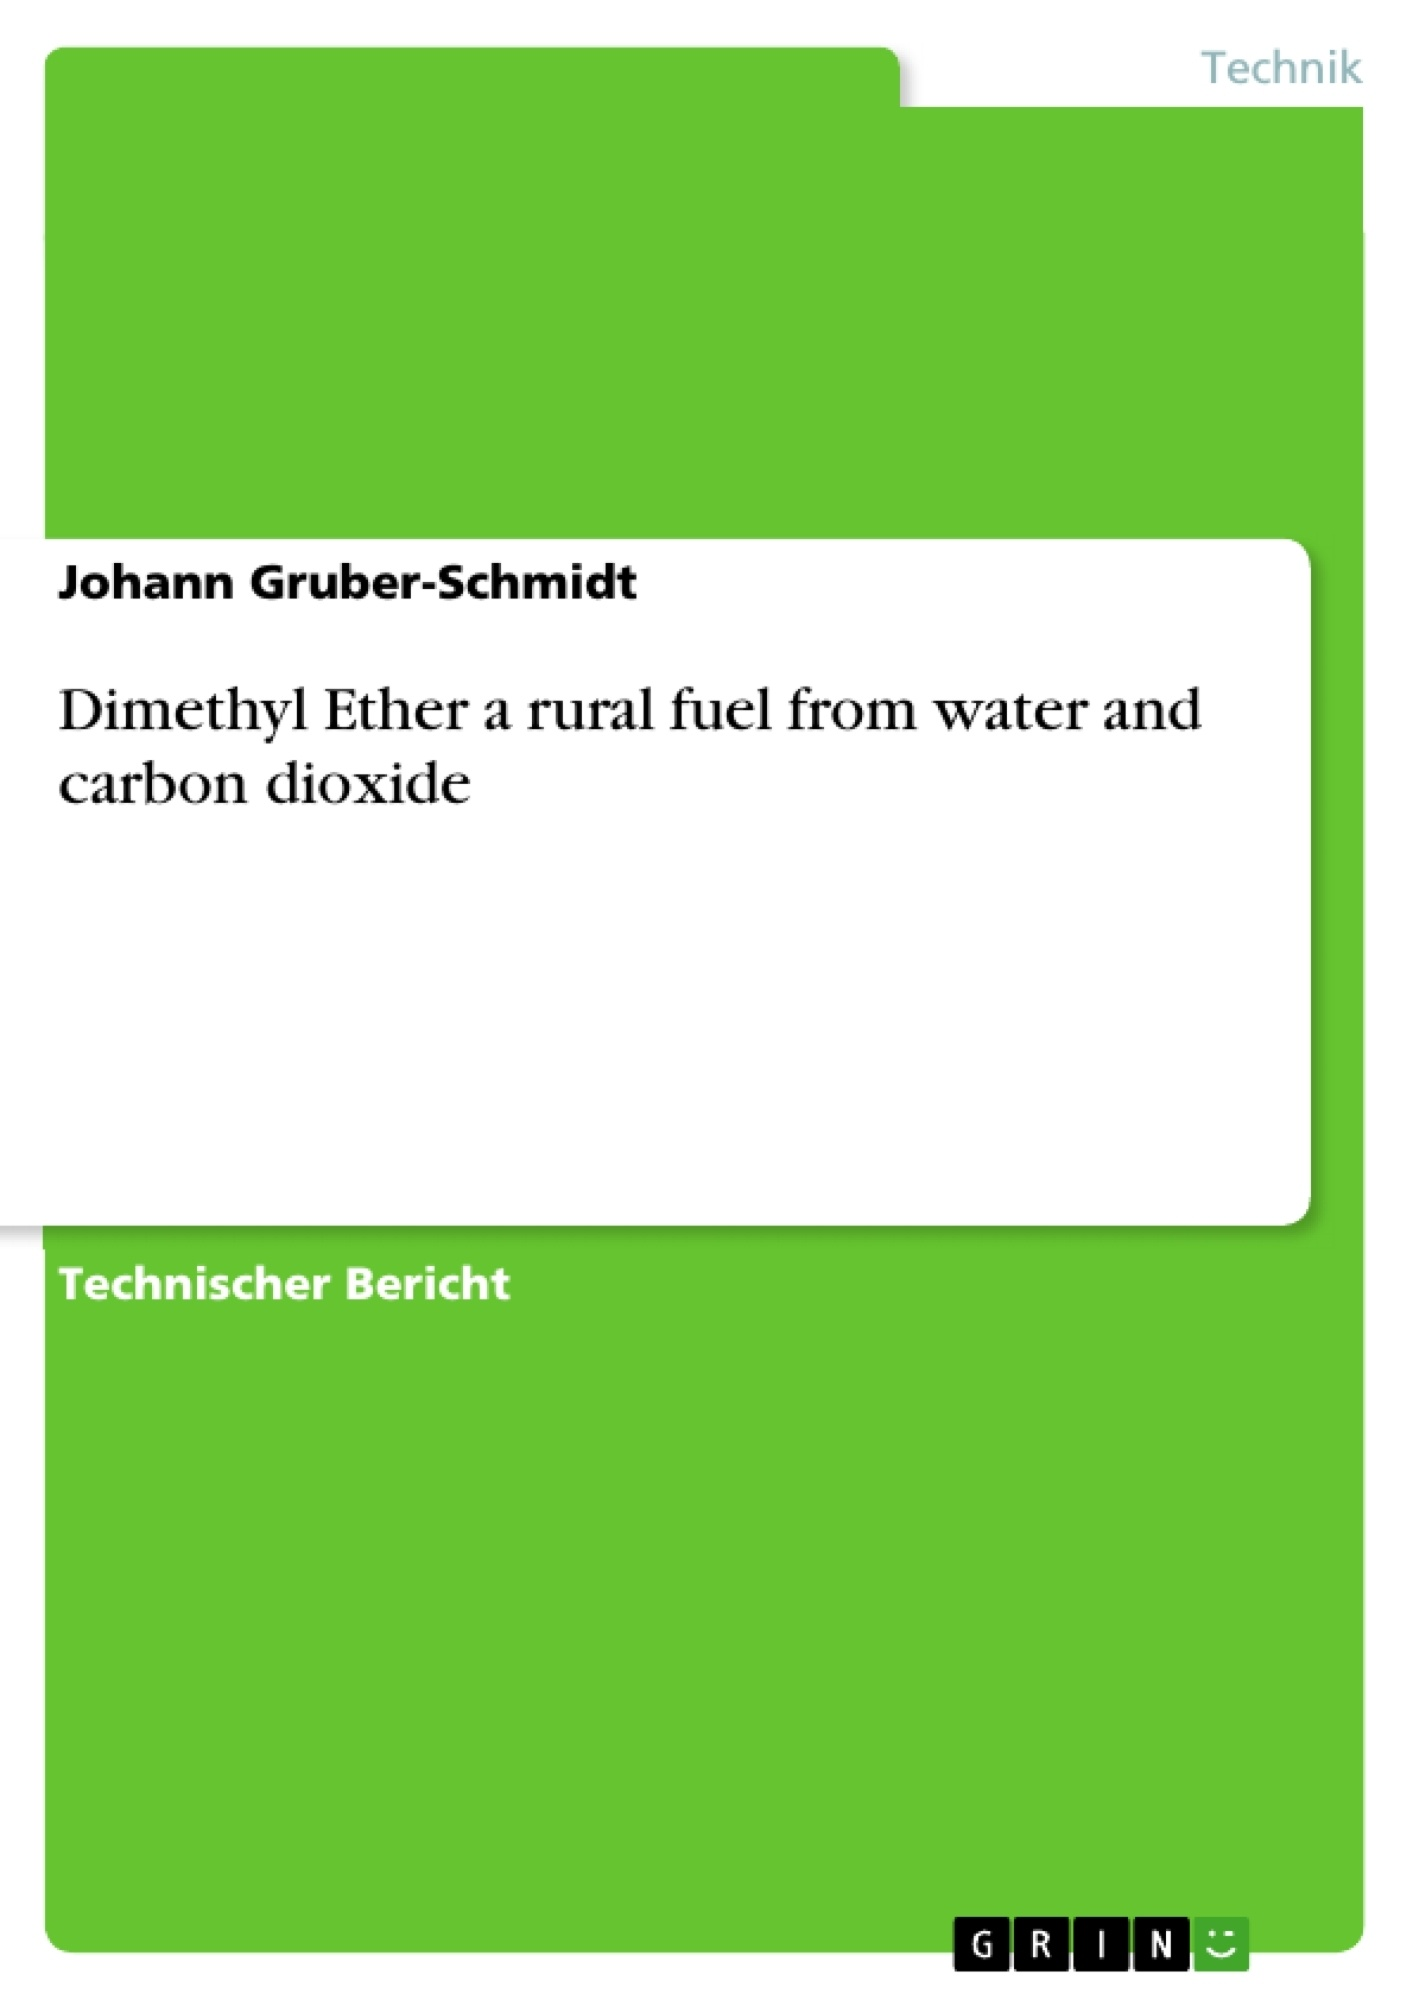 Titel: Dimethyl Ether a rural fuel from water and carbon dioxide